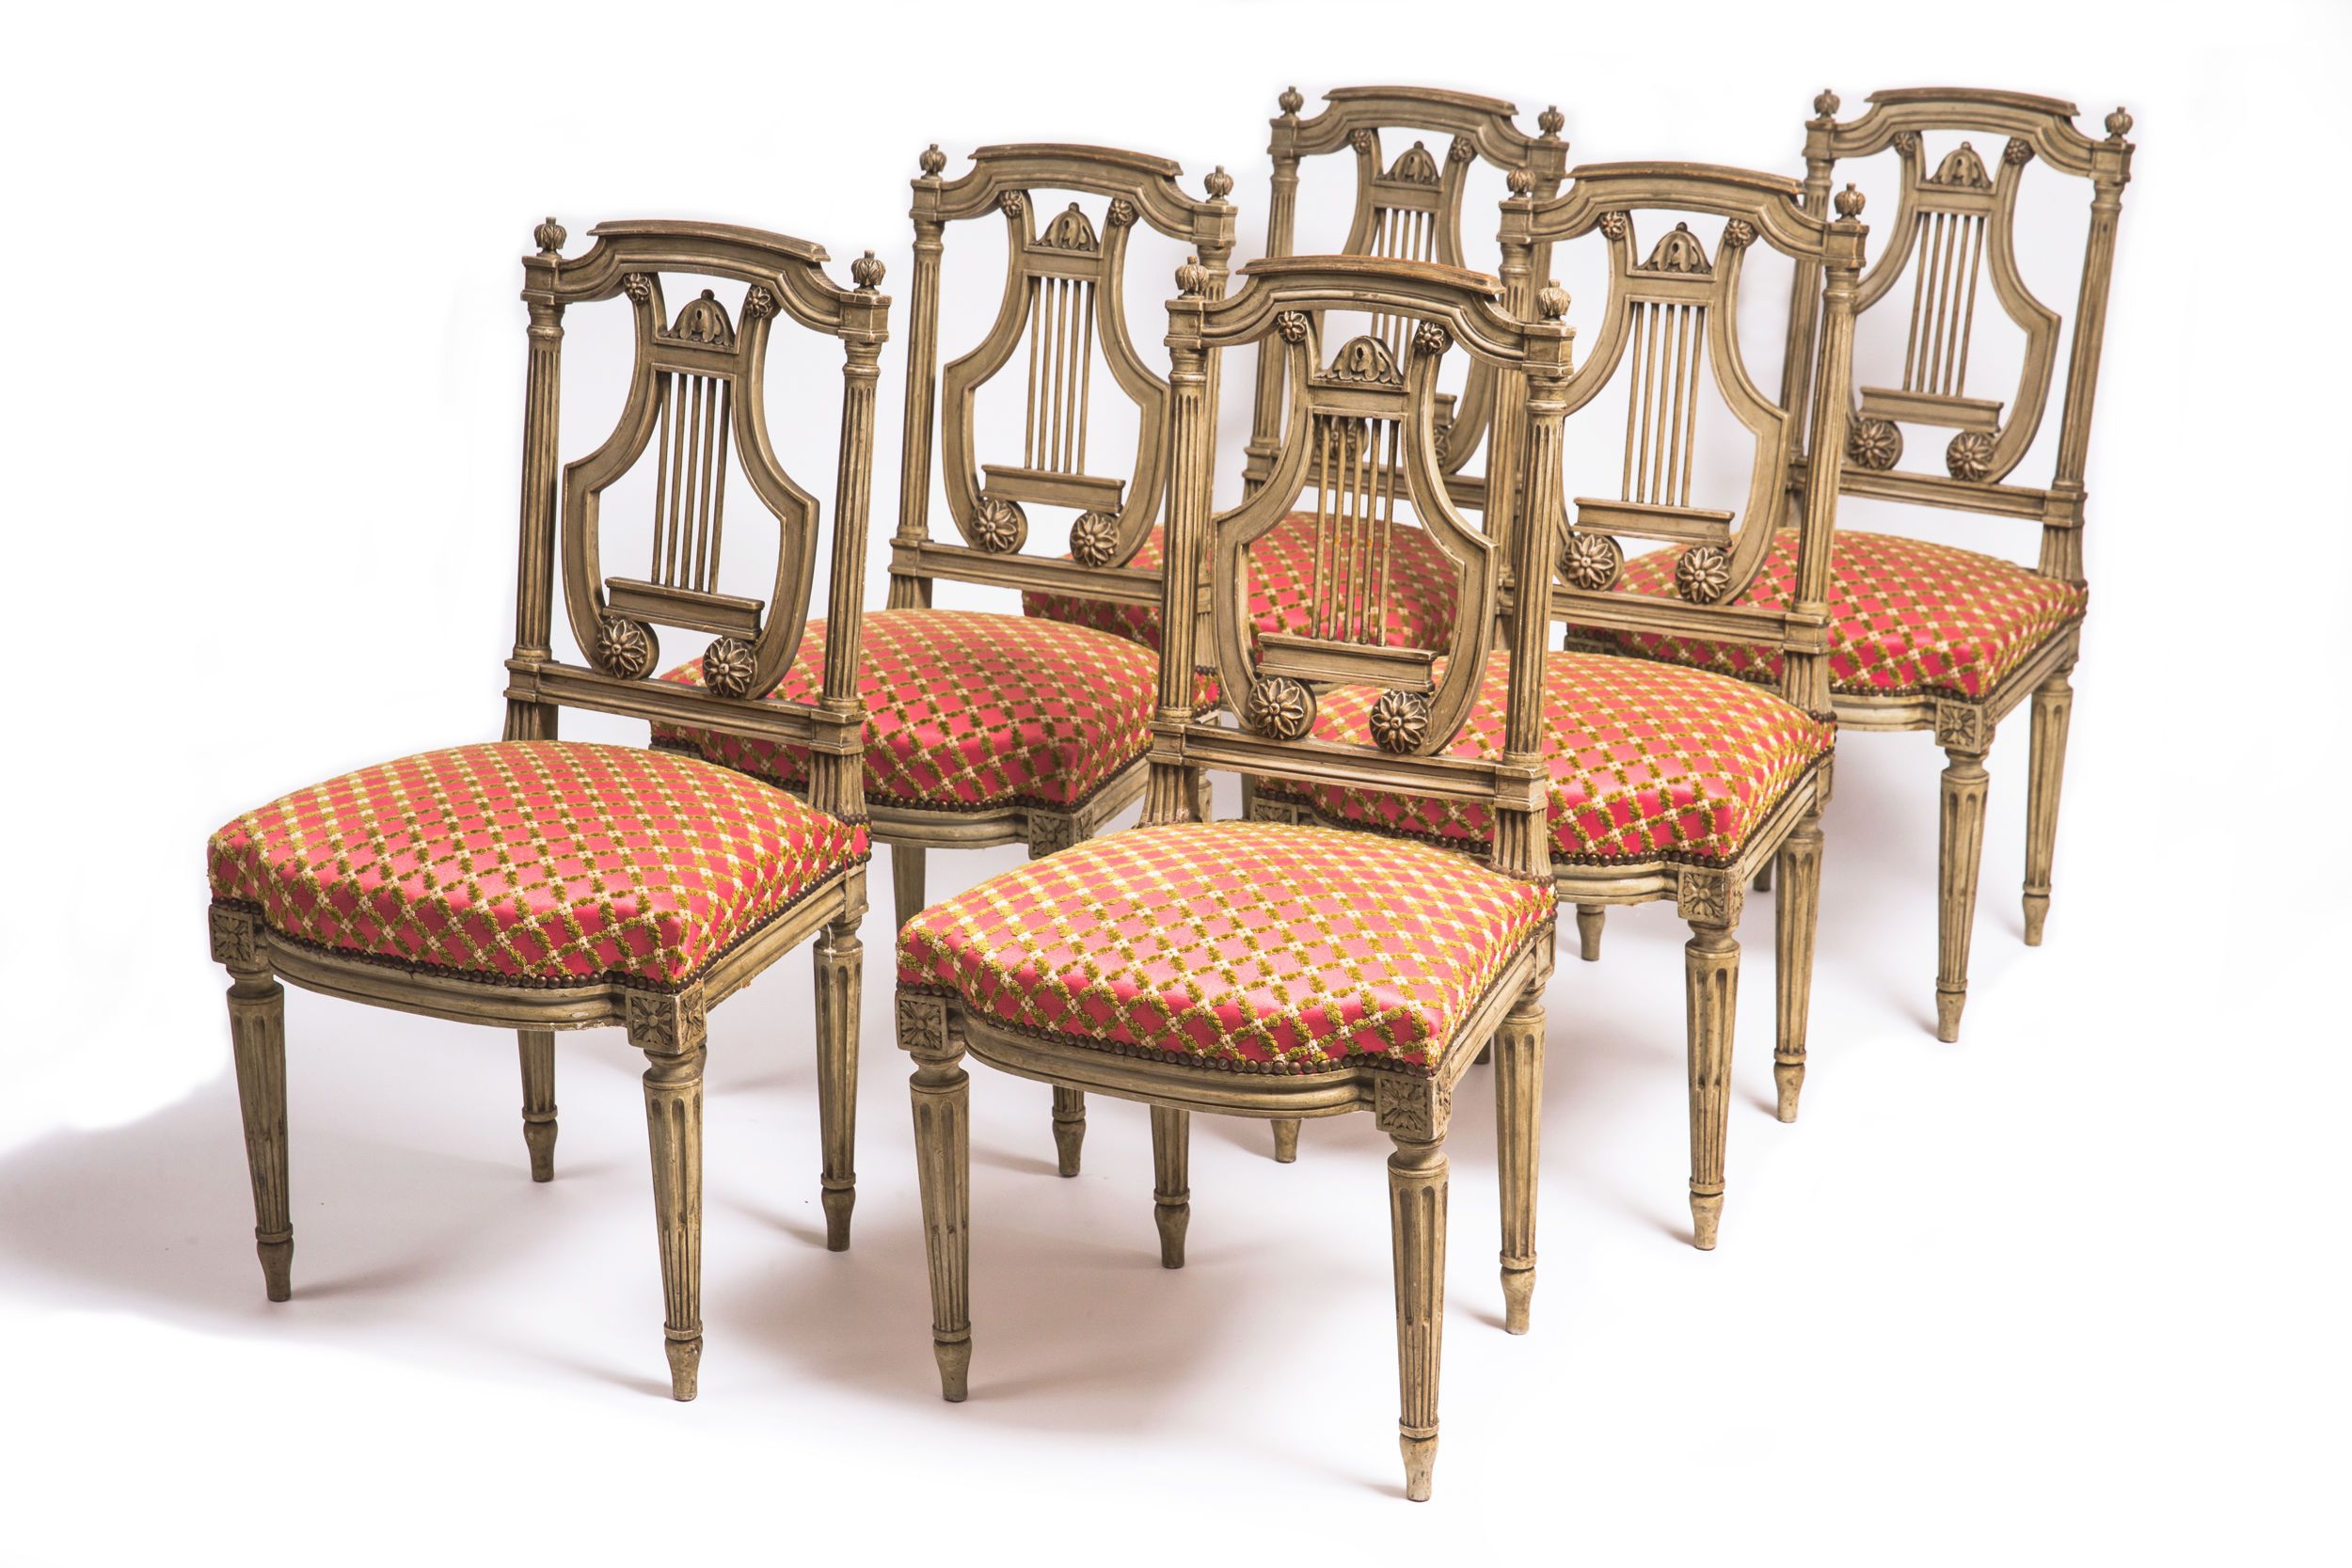 Set of 6 19th century French decorated Louis XVI dining chairs in